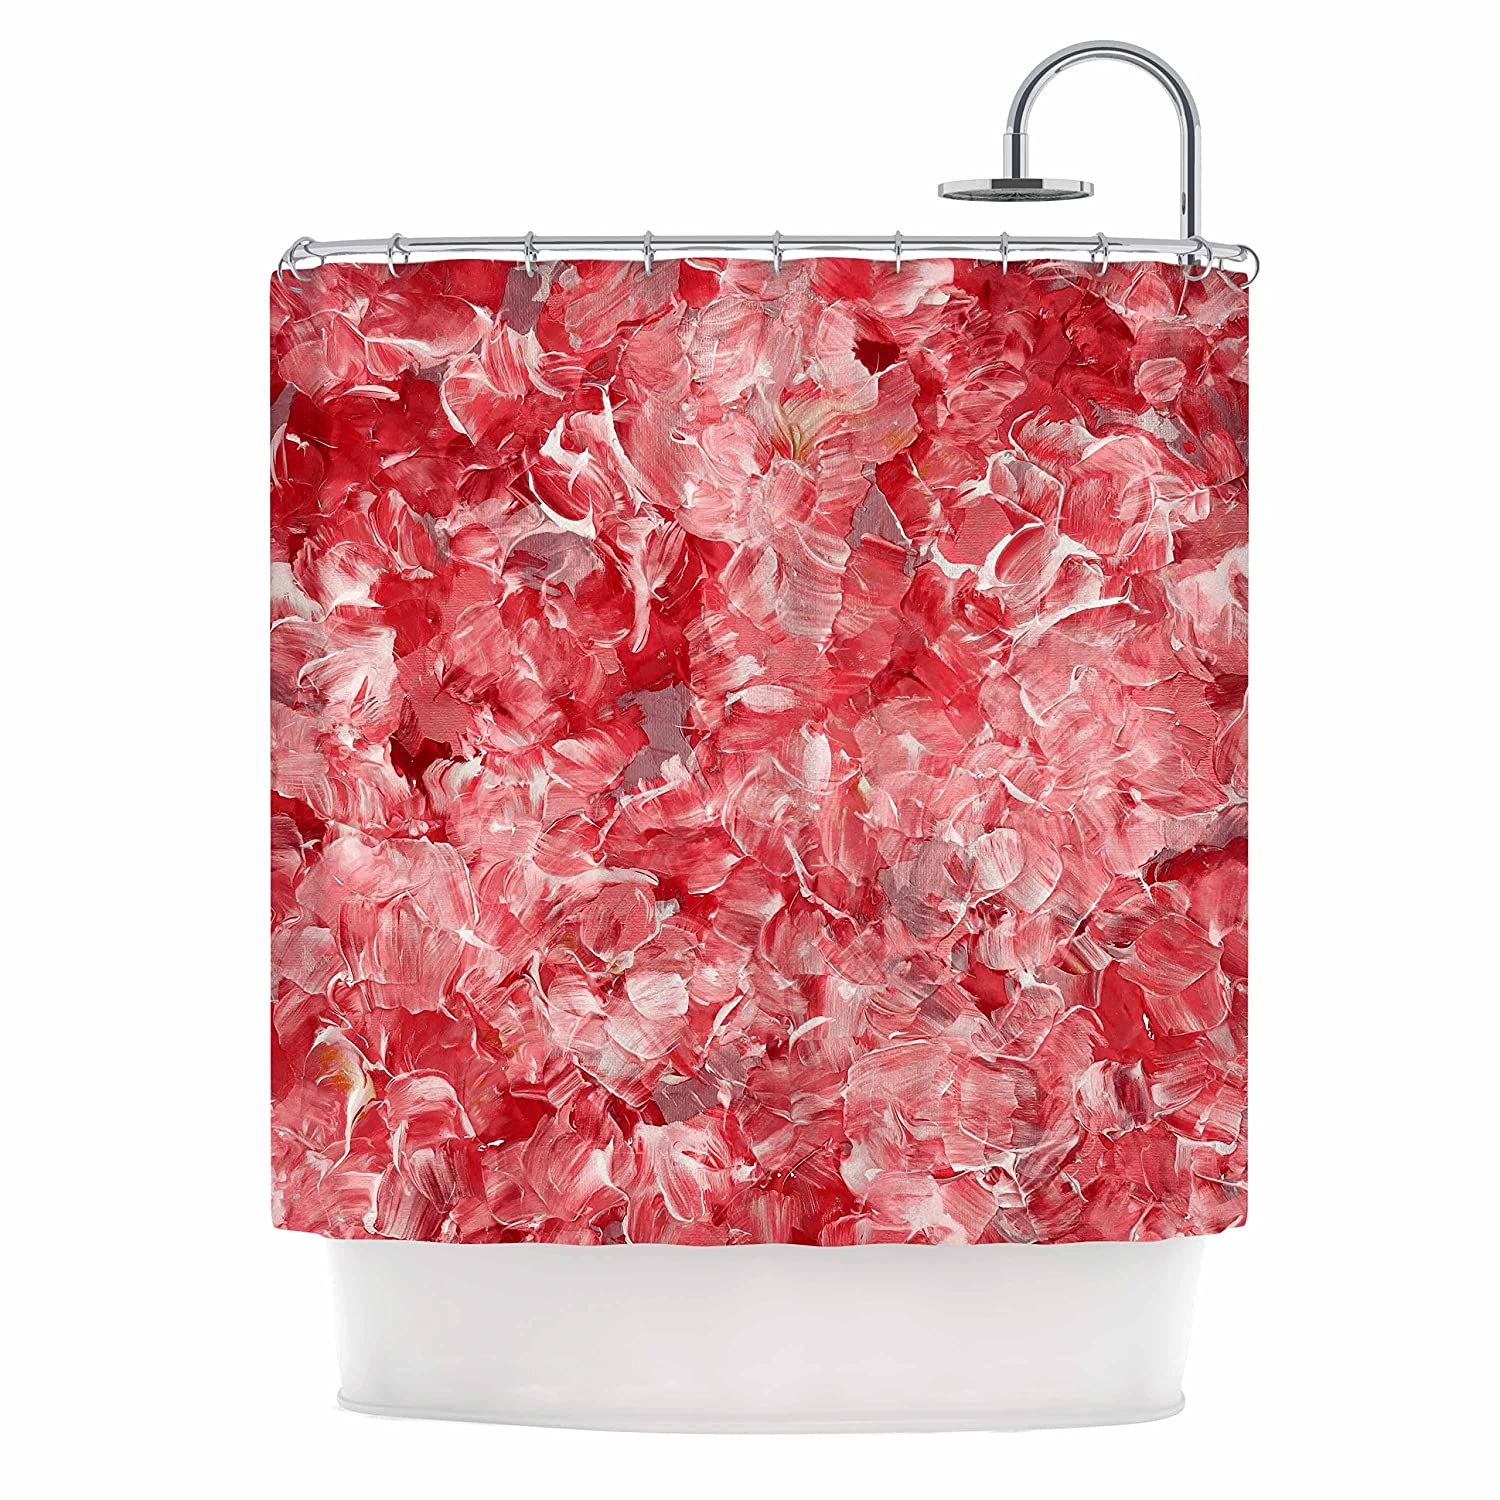 69 x 70 Shower Curtain 69 x 70 Shower Curtain JD1272ASC01 Kess InHouse EBI Emporium Bloom On Red White Pink Abstract